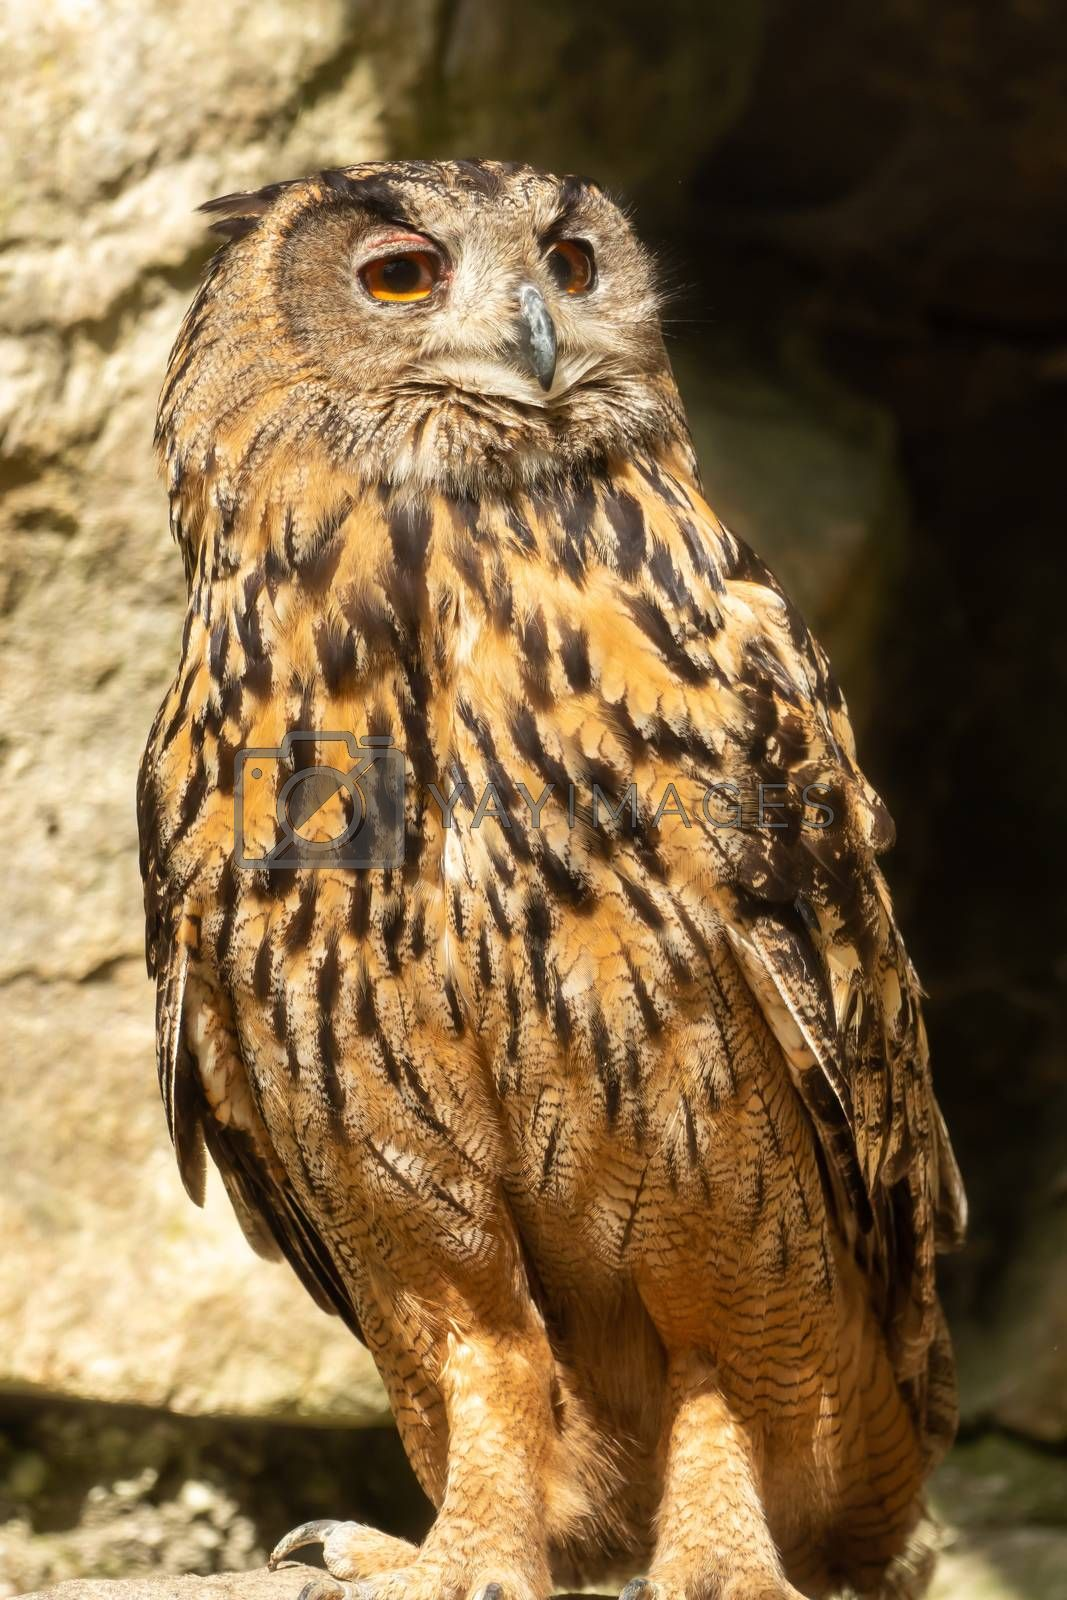 An eagle owl looks into the distance by Sandra Fotodesign